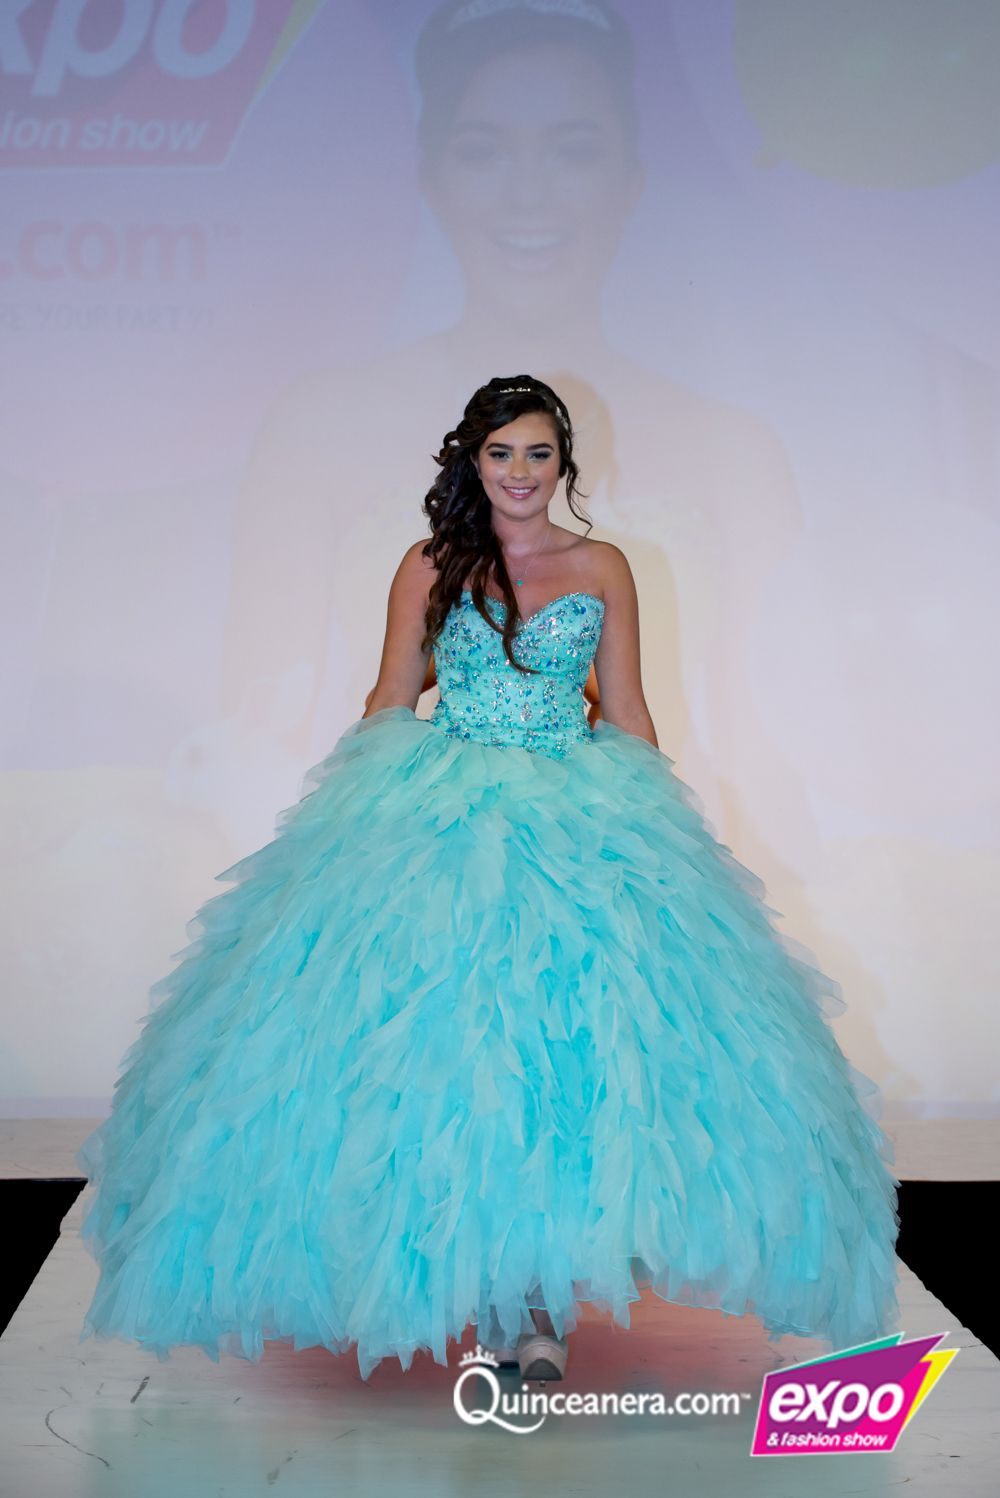 ab5f0b3499  3 Everything must be in place at your quinceanera – that includes  everything underneath your quinceanera dress!  3